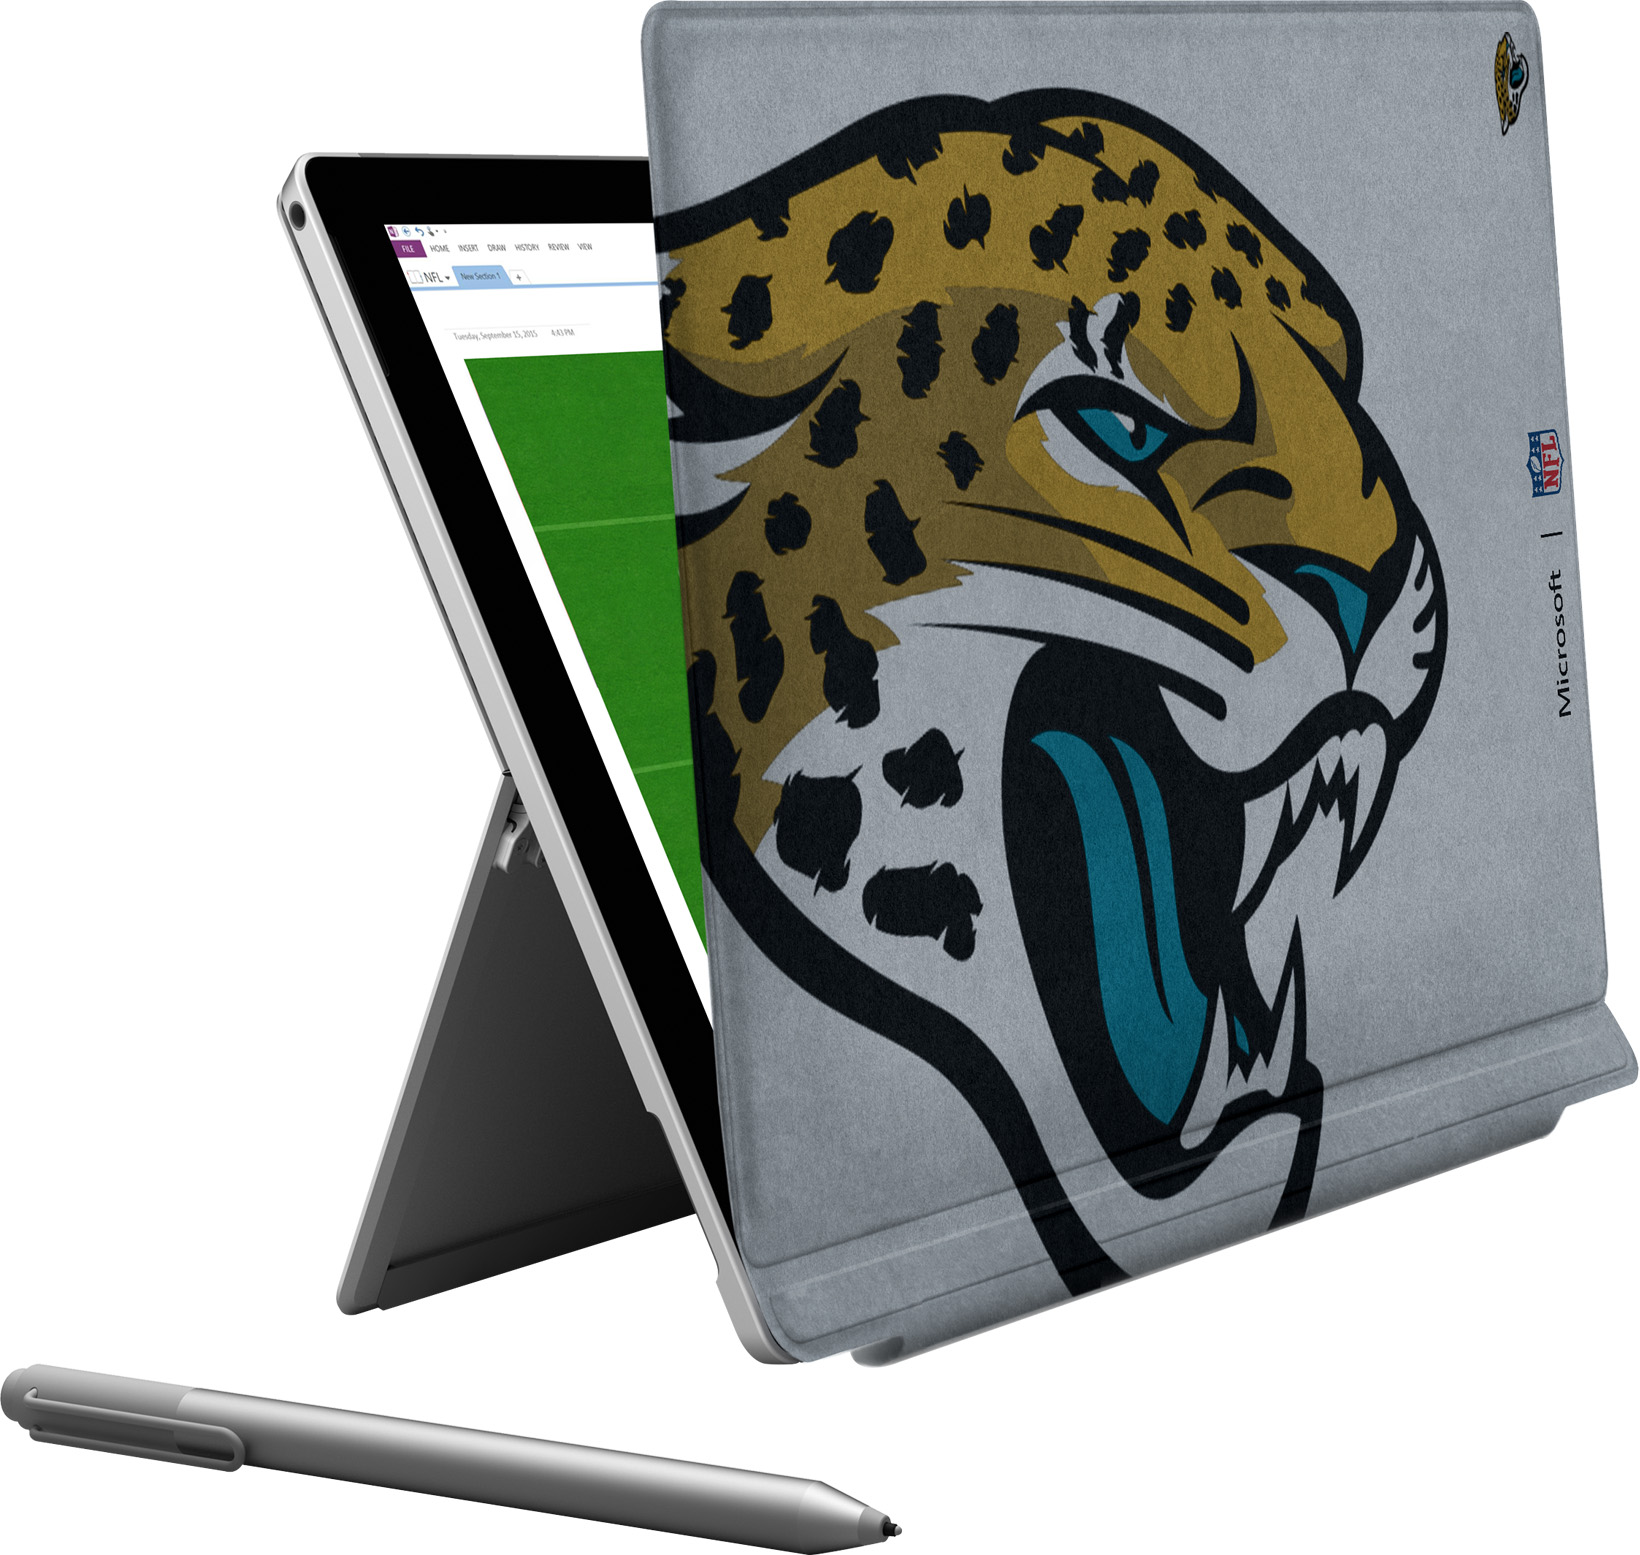 Microsoft Surface Pro 4 Jacksonville Jaguars Type Cover